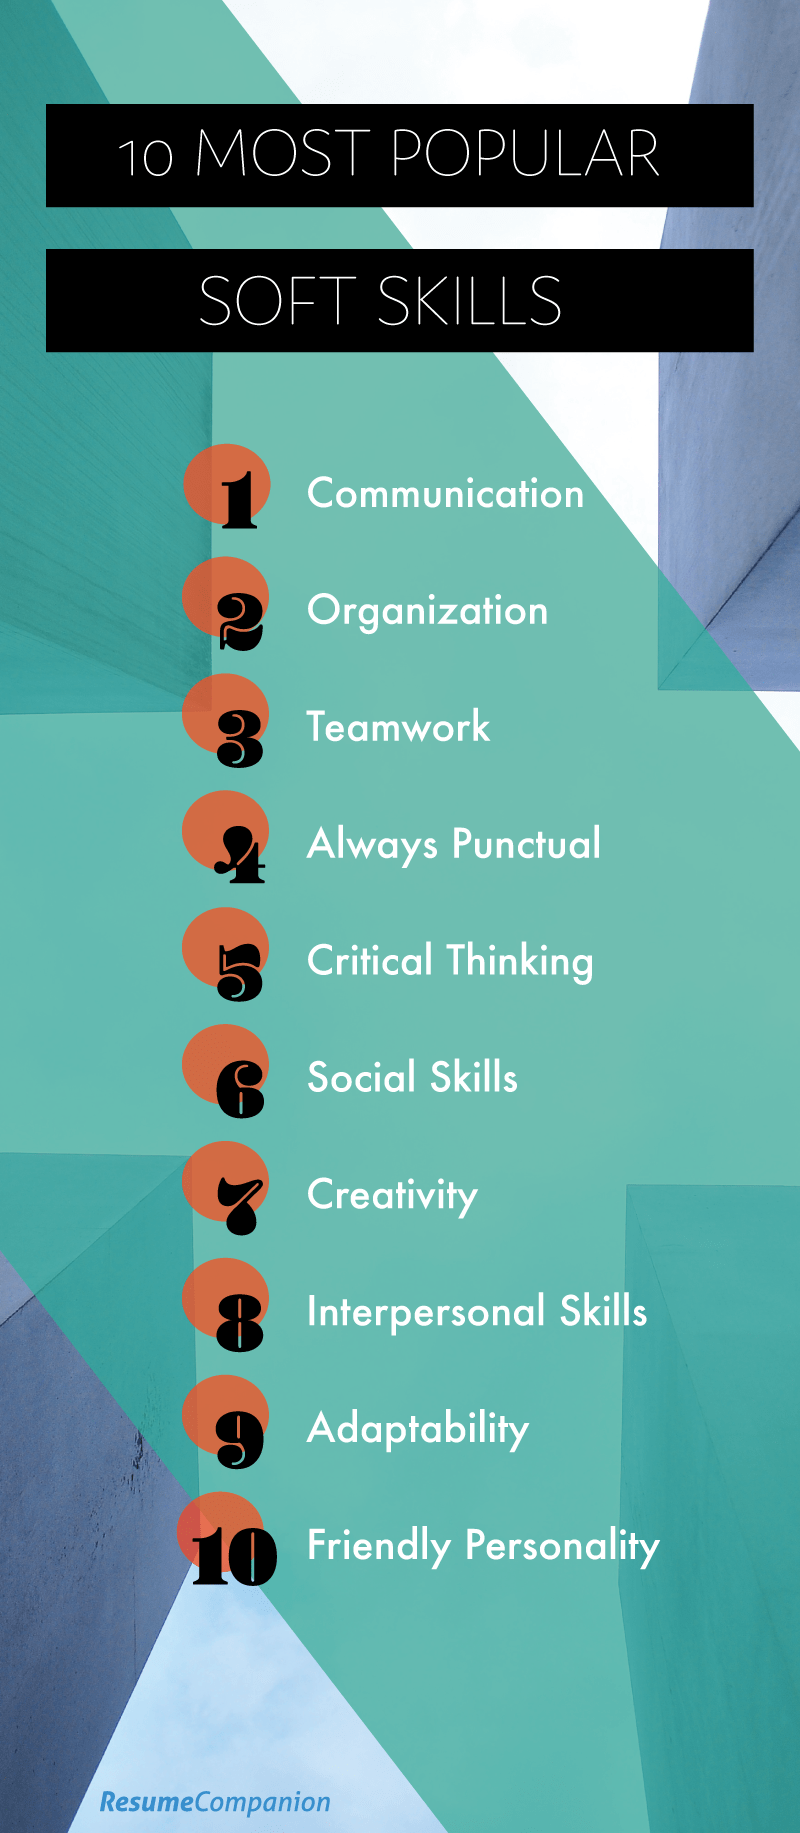 Top 10 Soft Skills For A Resume Employers Look For Infographic